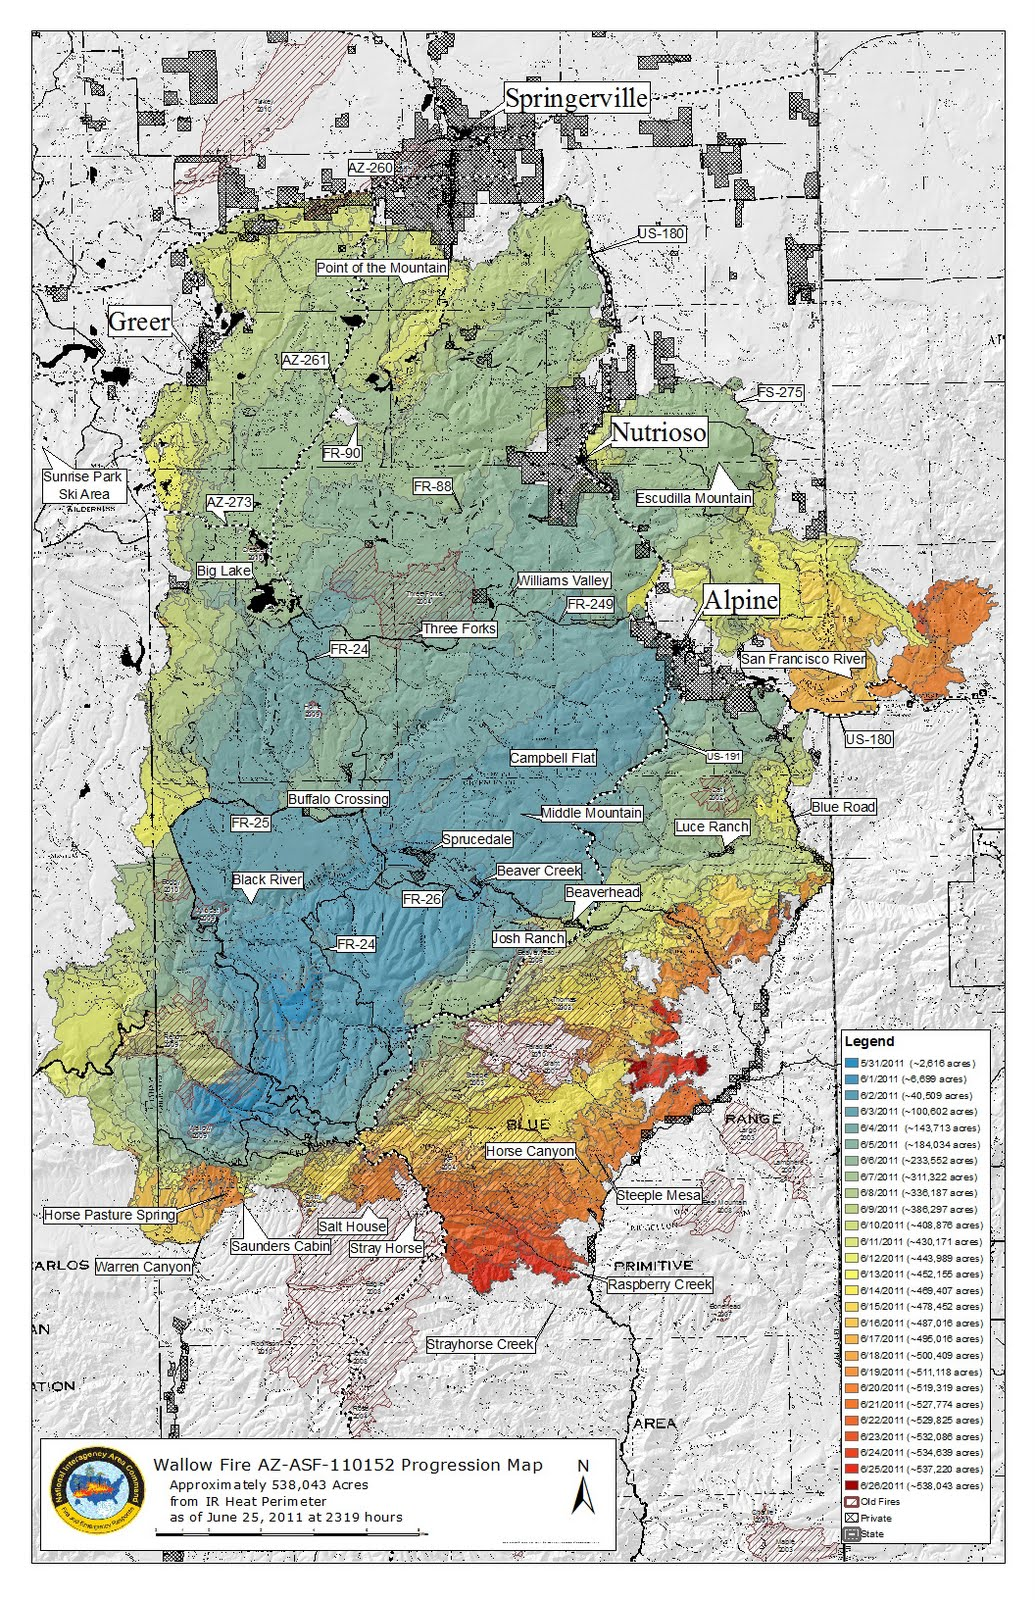 Arizona Hiking WALLOW FIRE MAPS